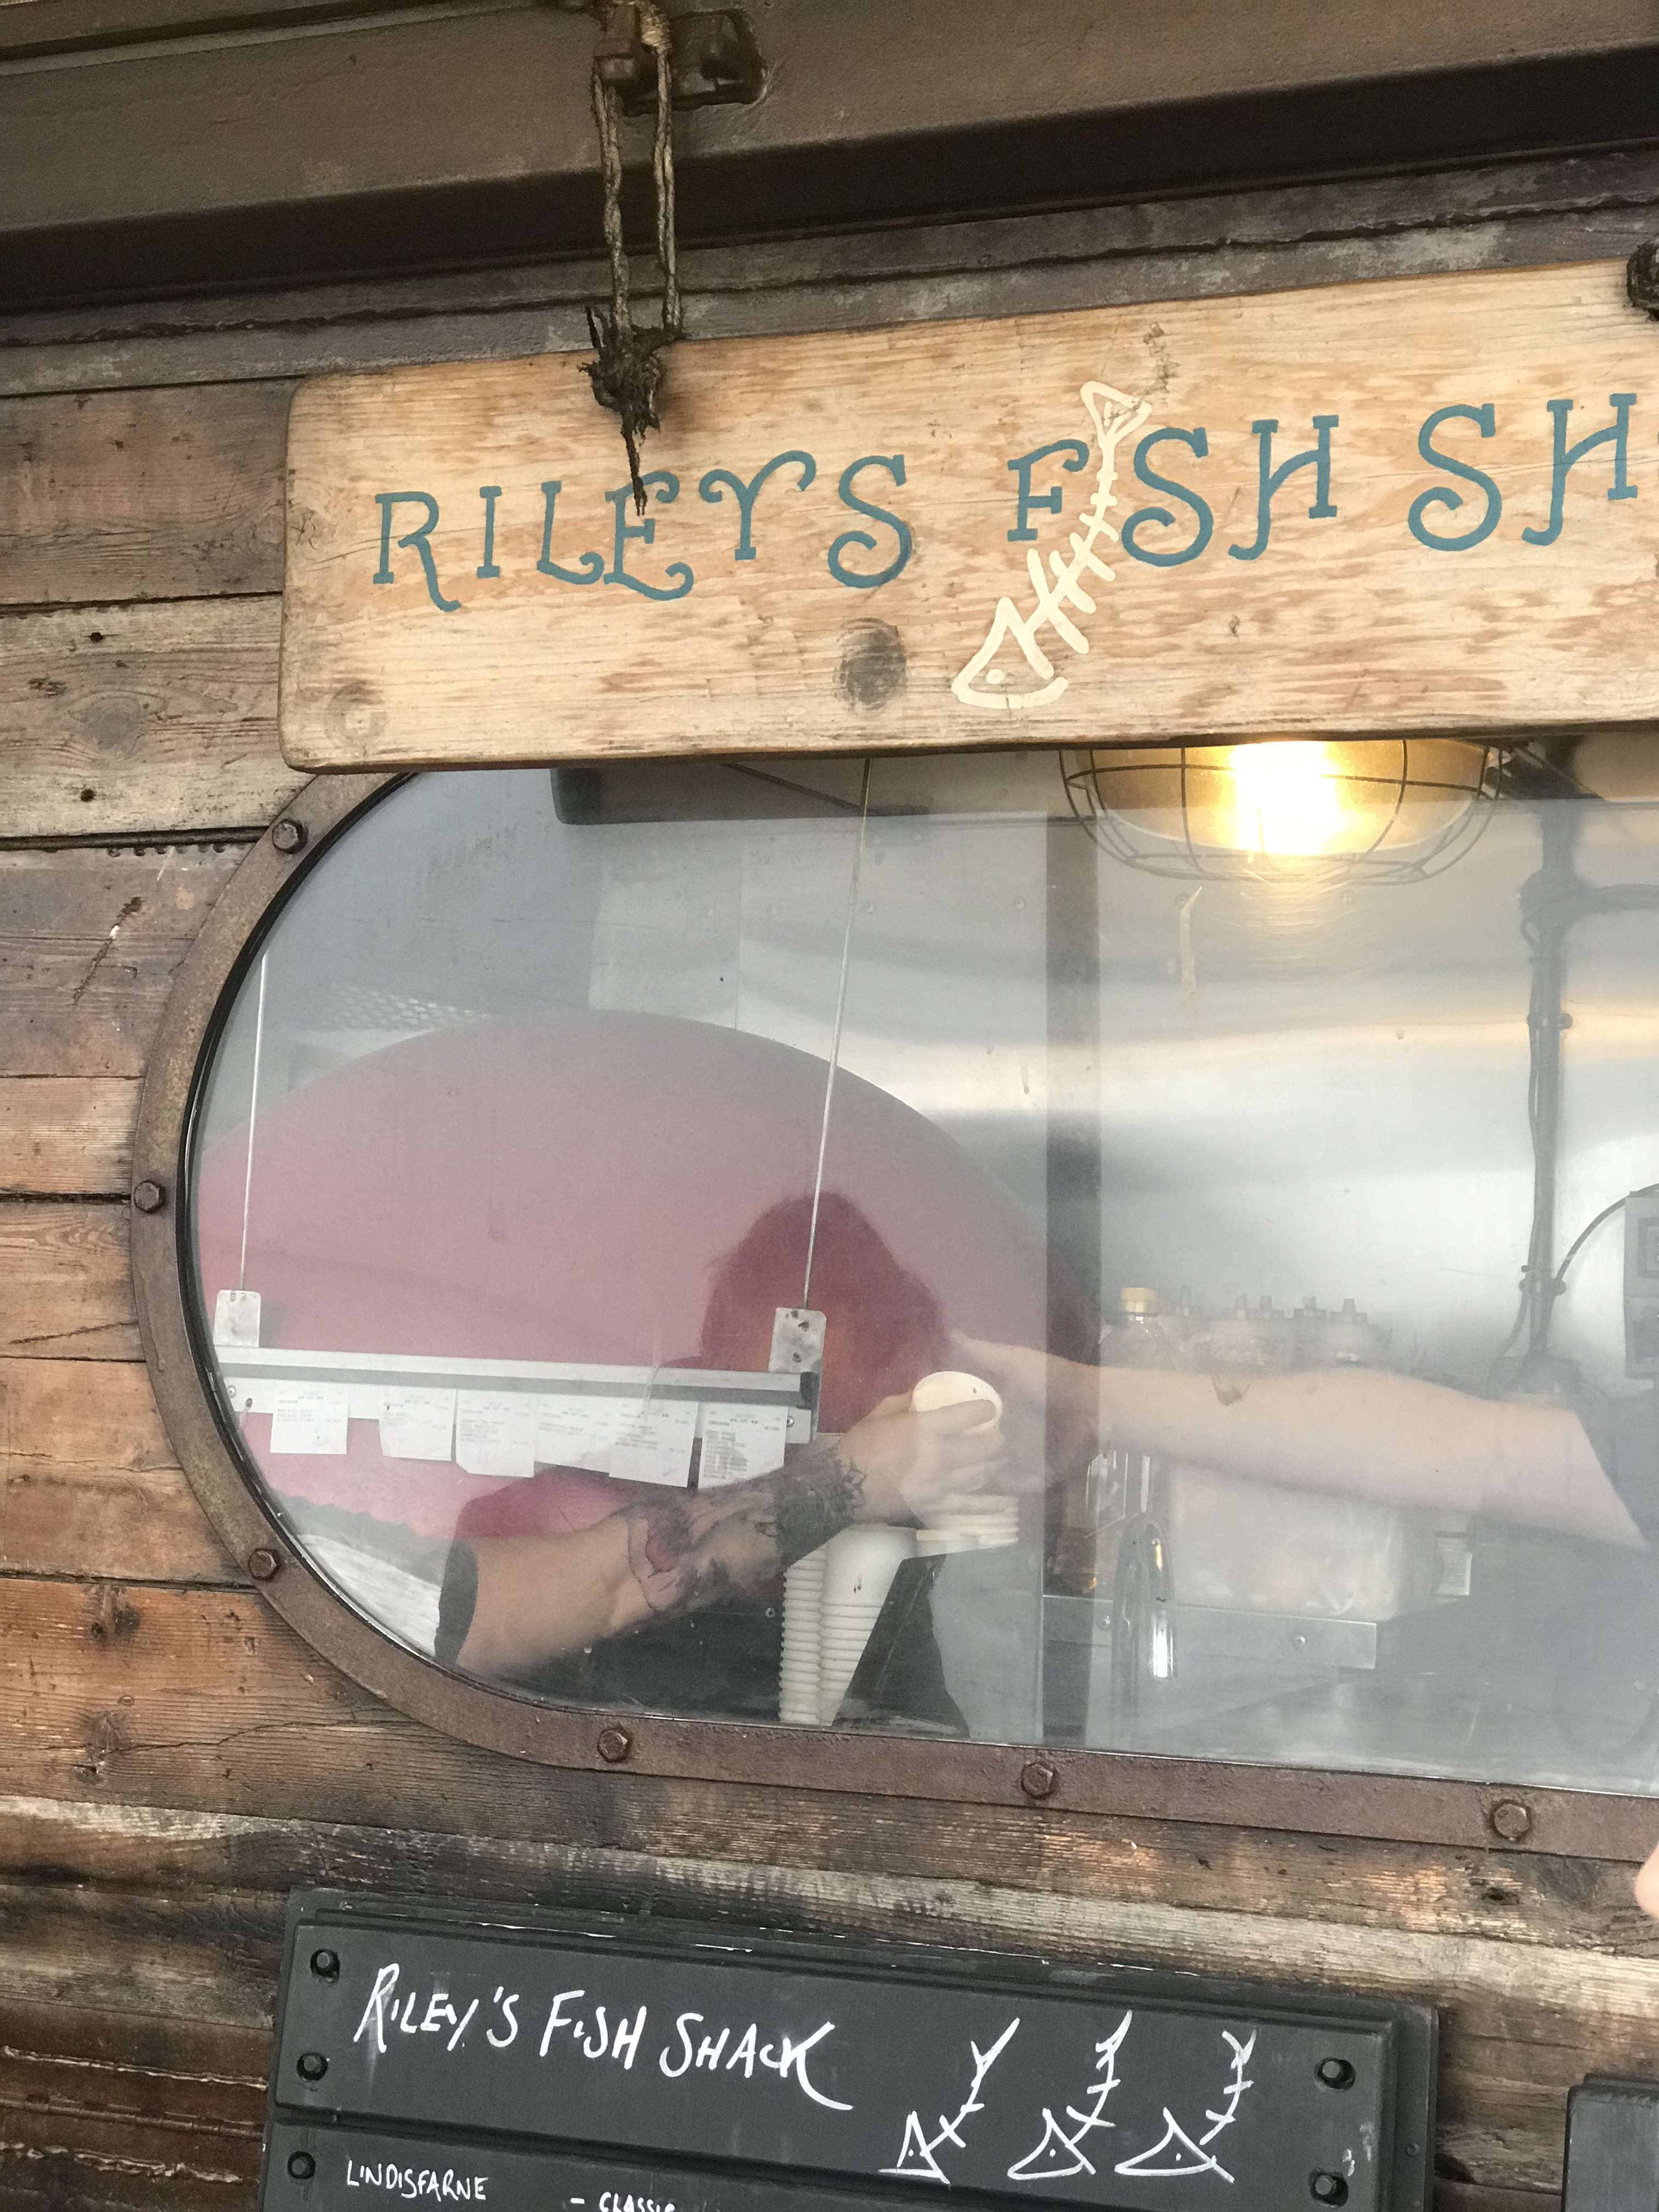 Top 10 best places to eat in Newcastle | Riley's Fish Shack, King Edwards Bay, Tynemouth | Restaurant Review | Elle Blonde Luxury Lifestyle Destination Blog